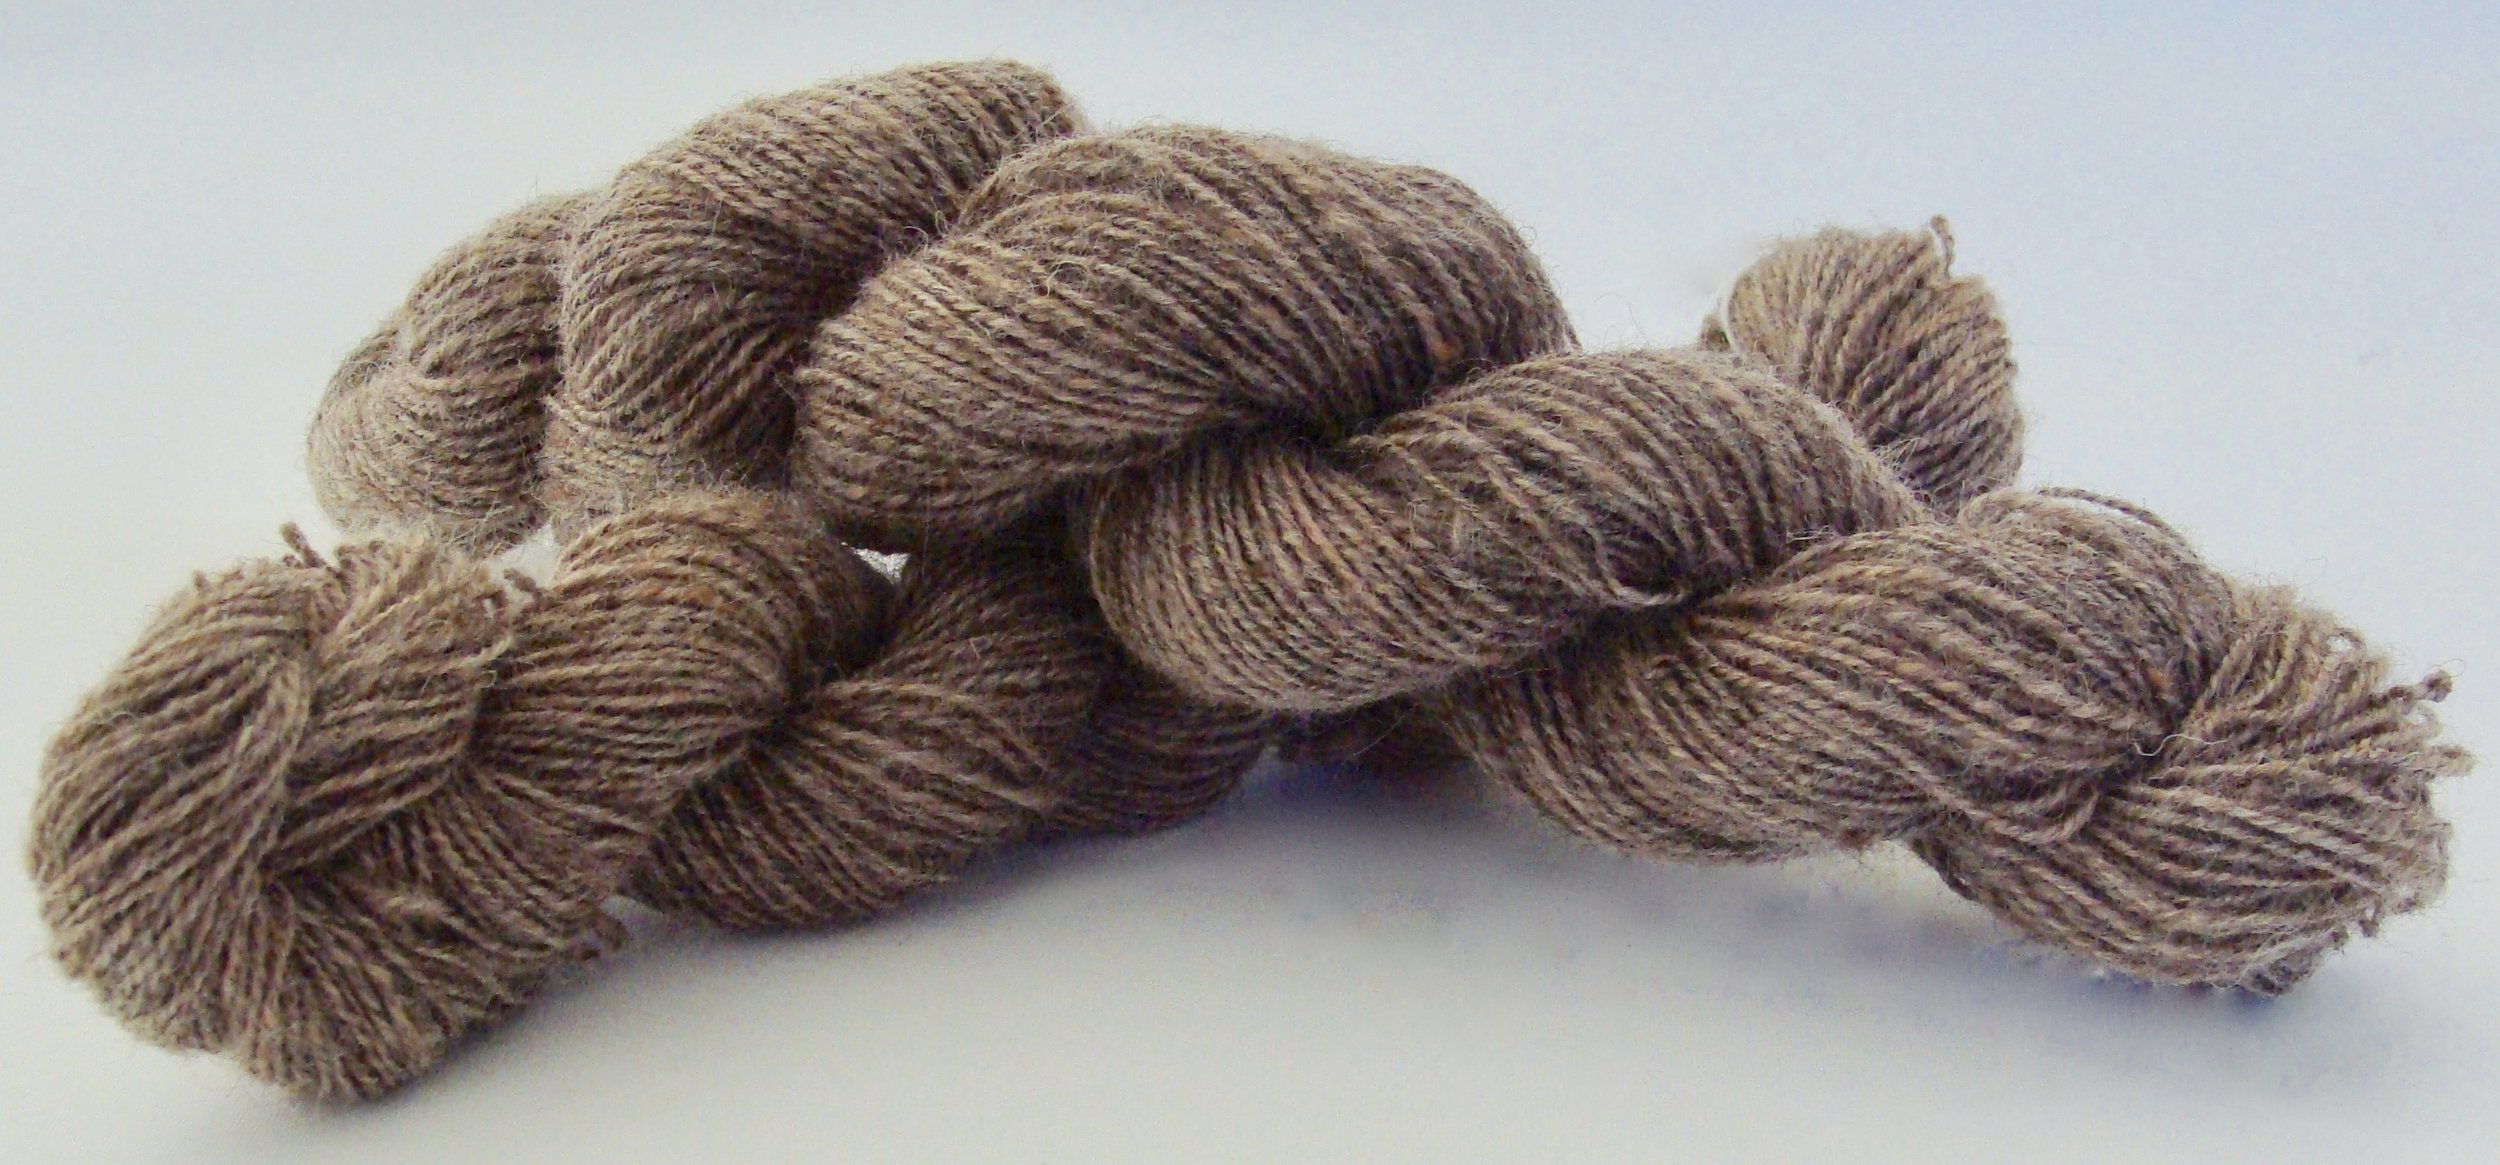 2 skeins of Romney wool 2-ply yarn for a total of 263 yards.